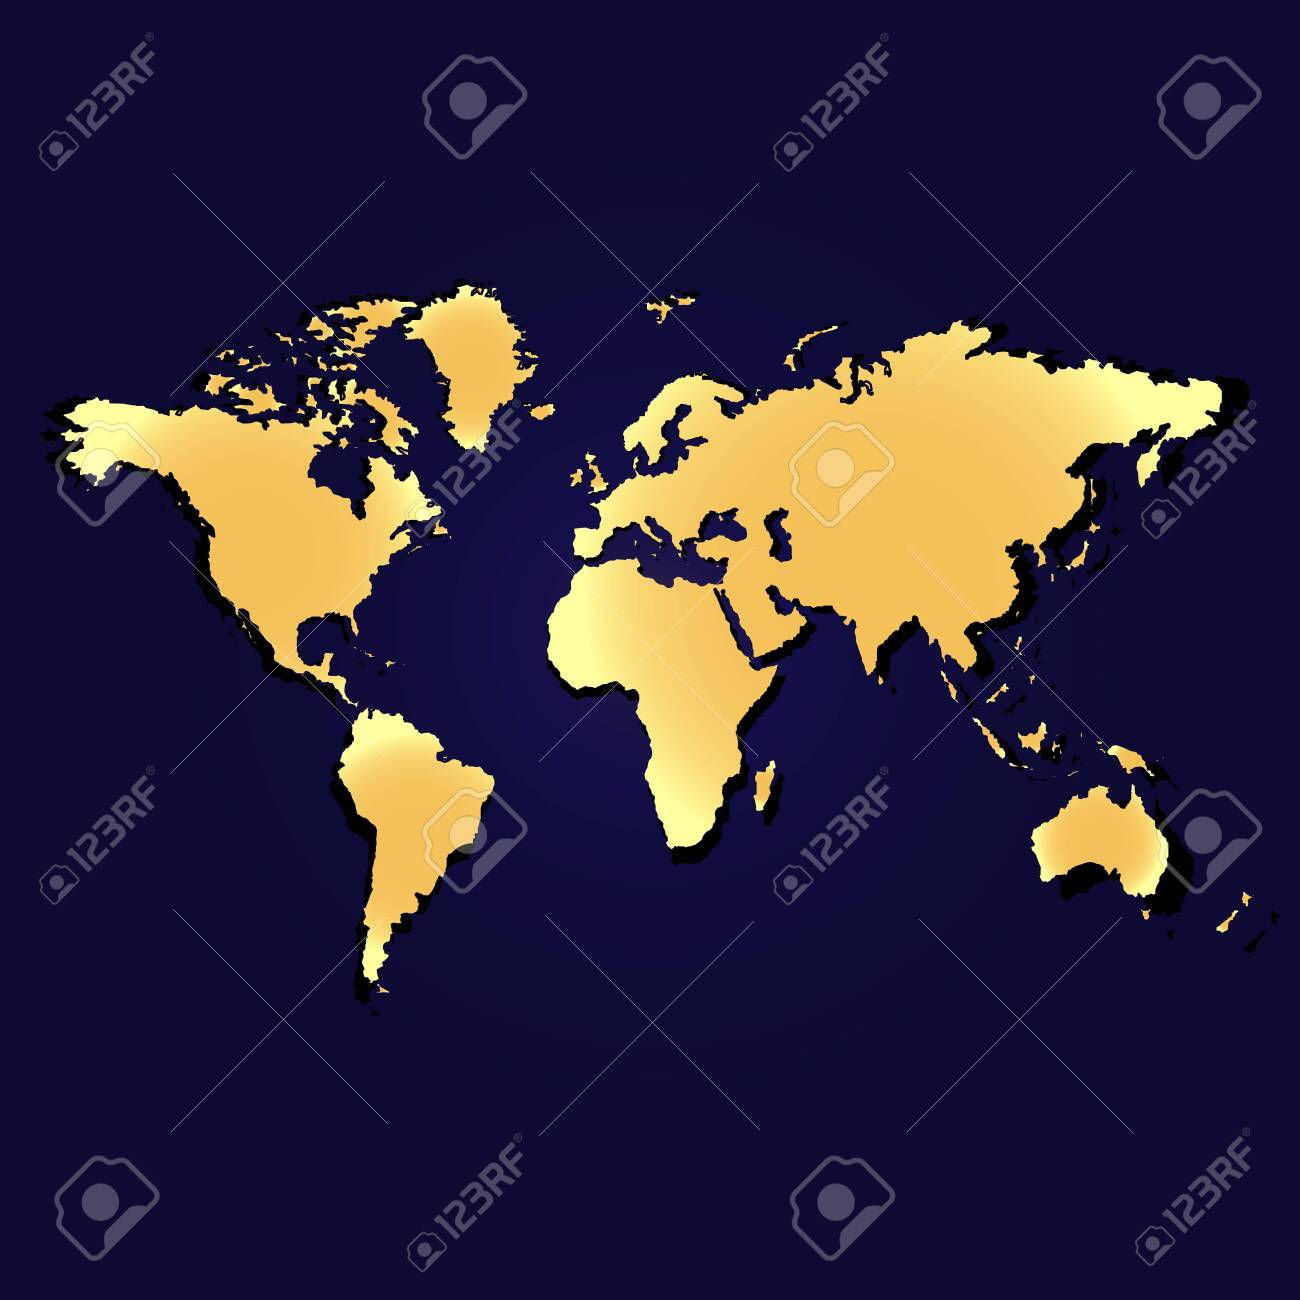 Map of the planet earth. Continents and oceans. Golden color. Vector illustration - 147362007